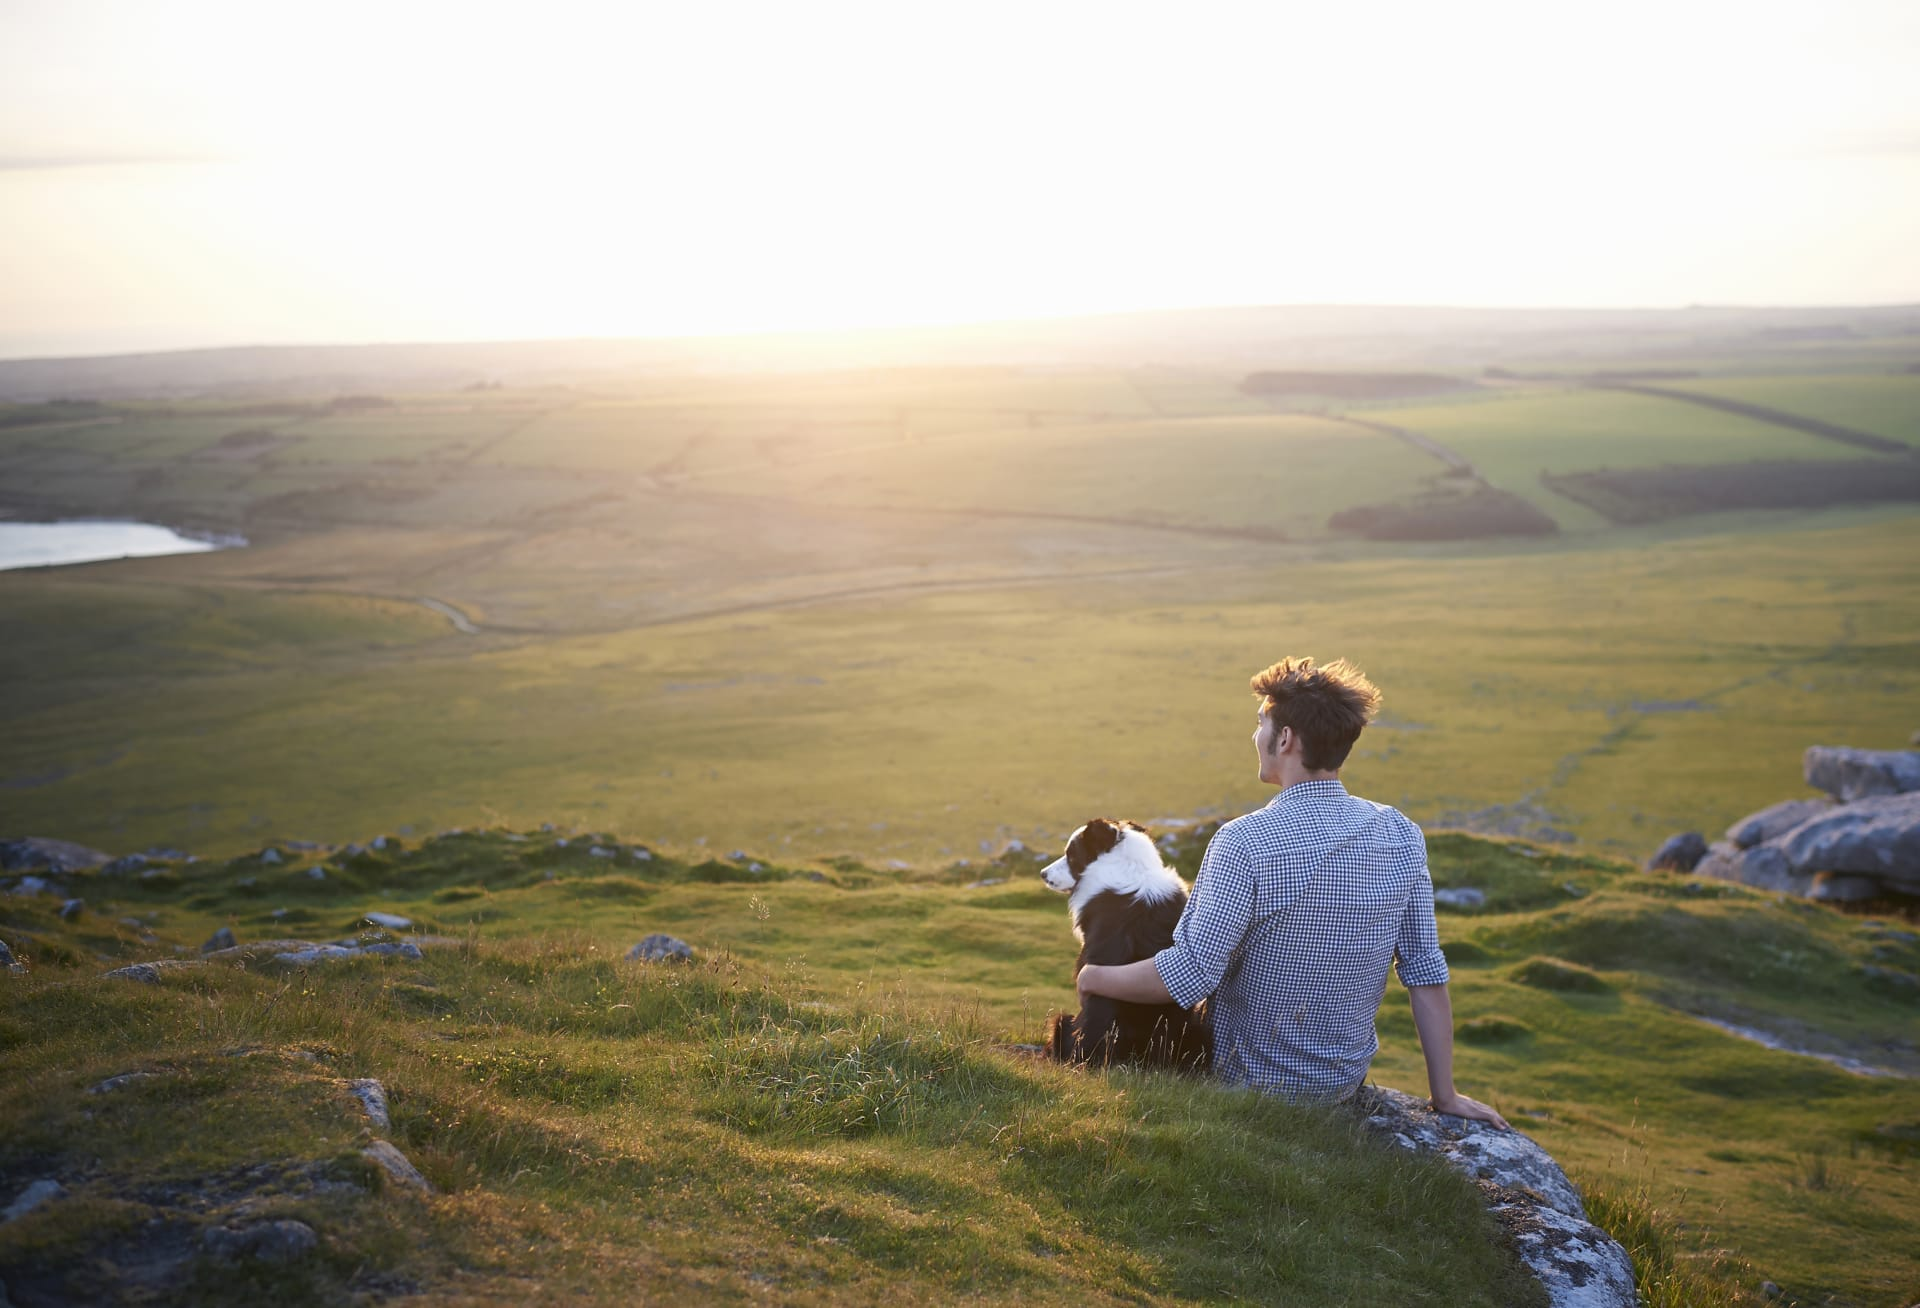 person with dog sitting on the ground in screen landscape